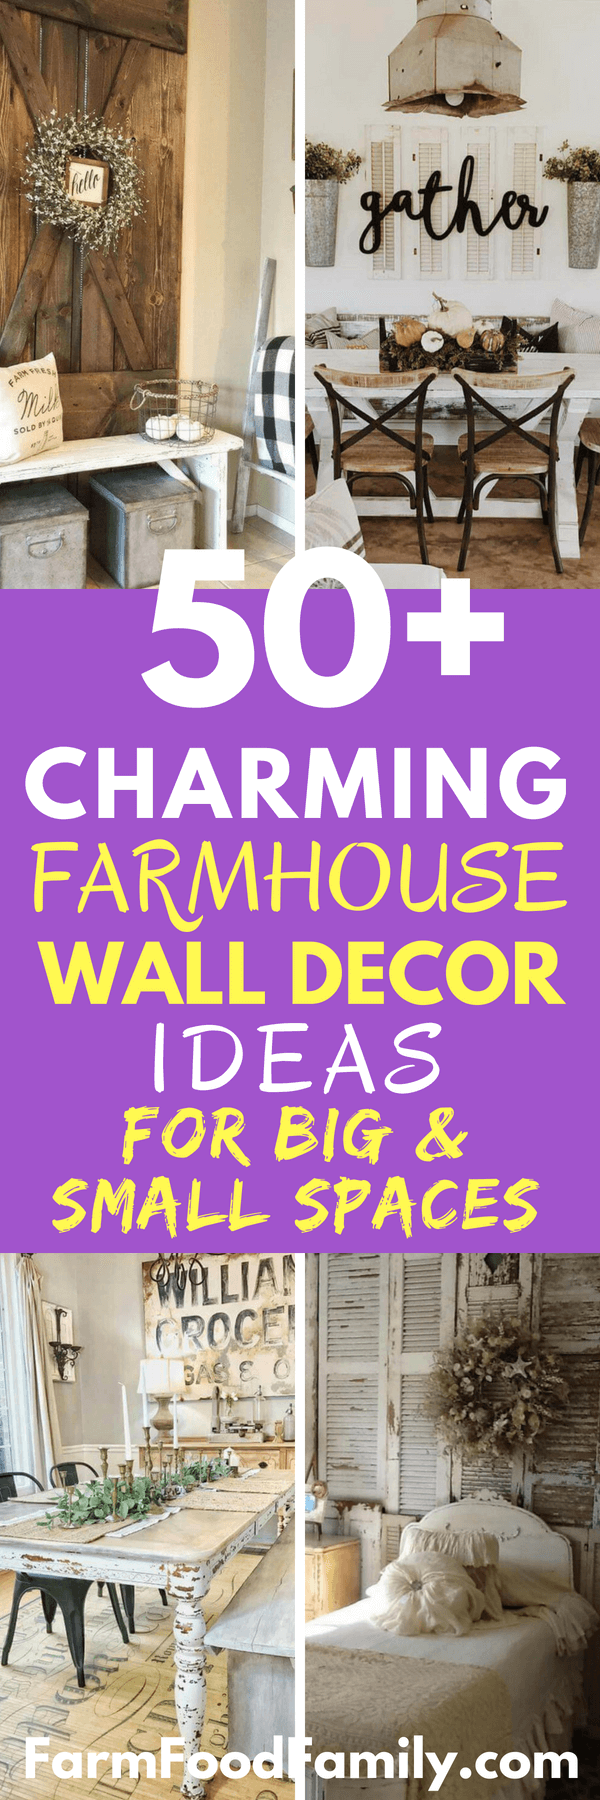 While floor décor and table accents can add up and quickly contribute to a cluttered look, walls are a great way to bring more of the farmhouse aesthetic into your home. The following list has a wide array of designs